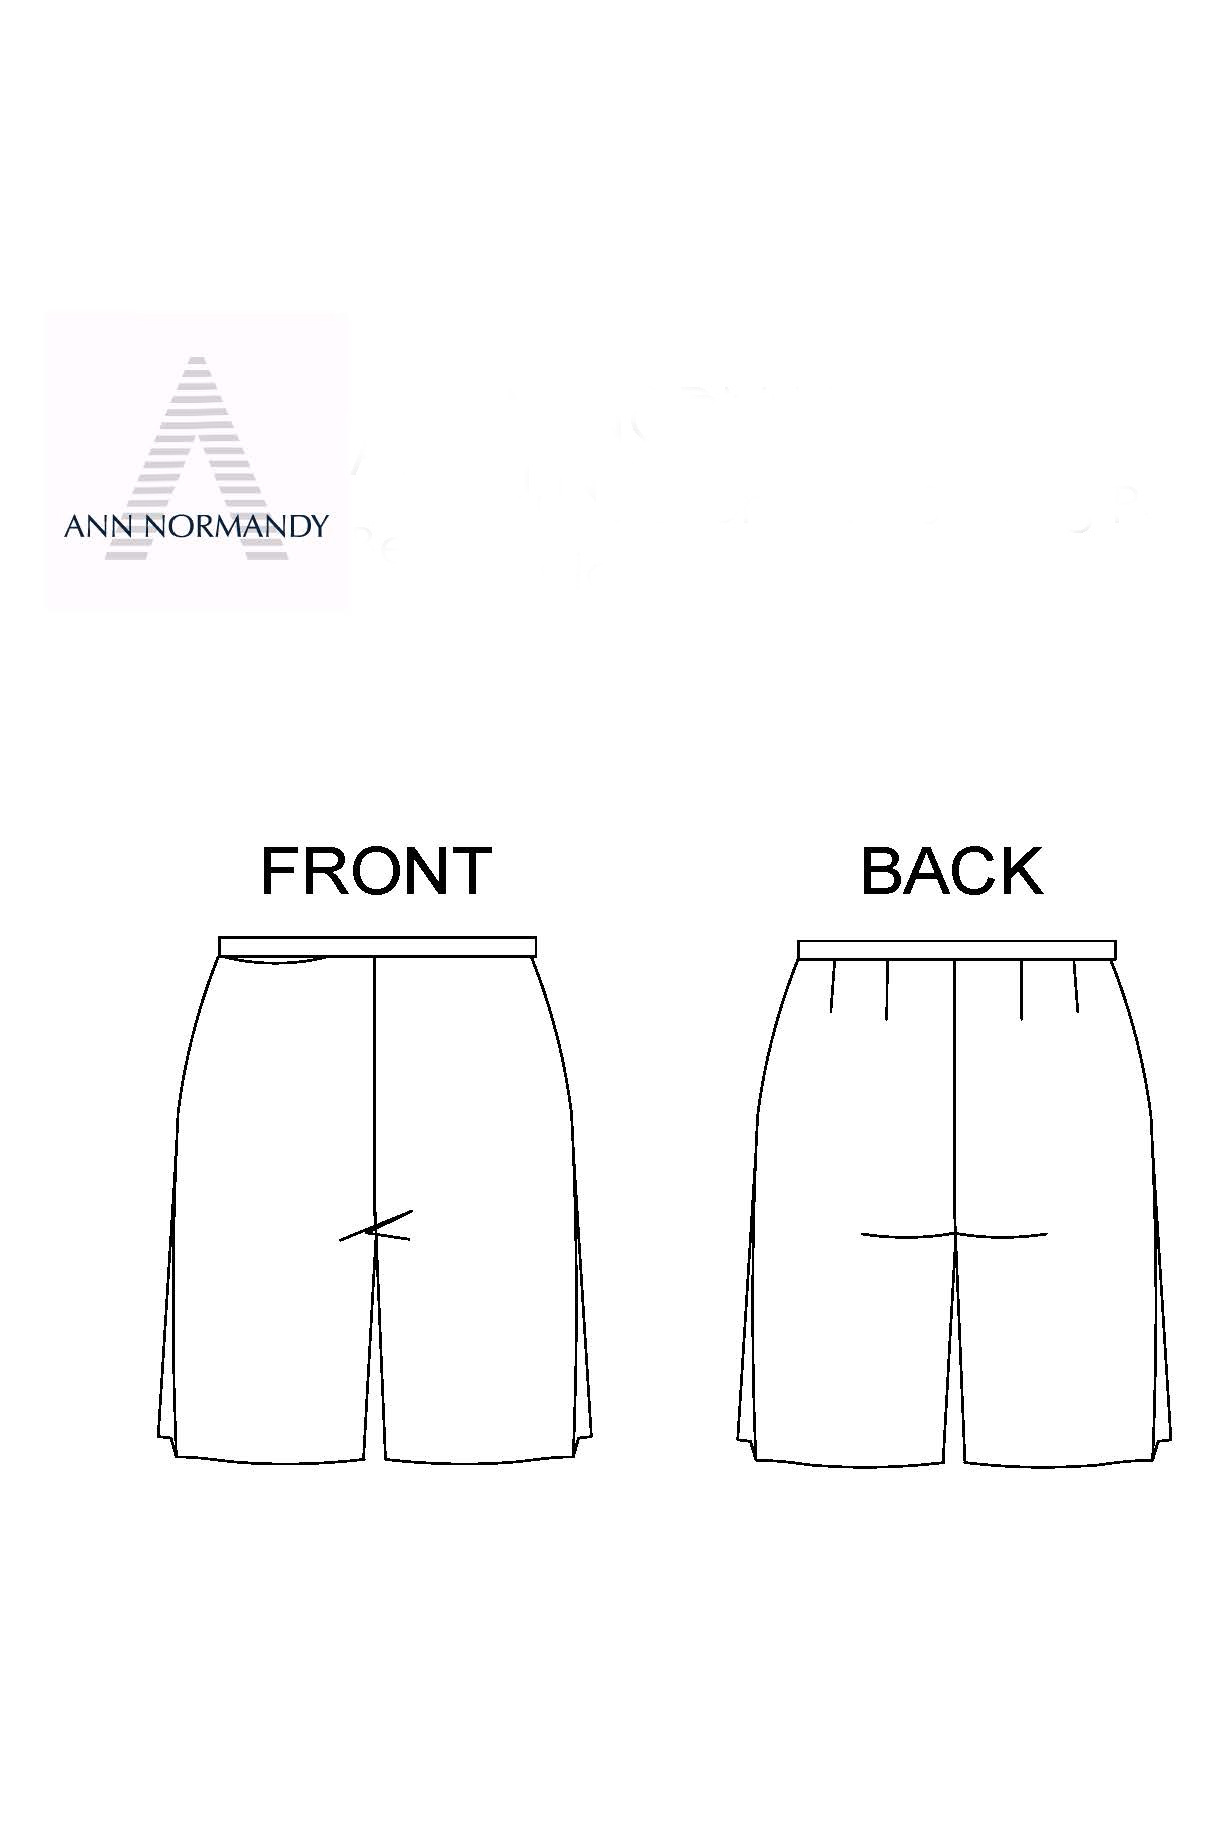 Bermuda Shorts sewing pattern from Ann Normandy